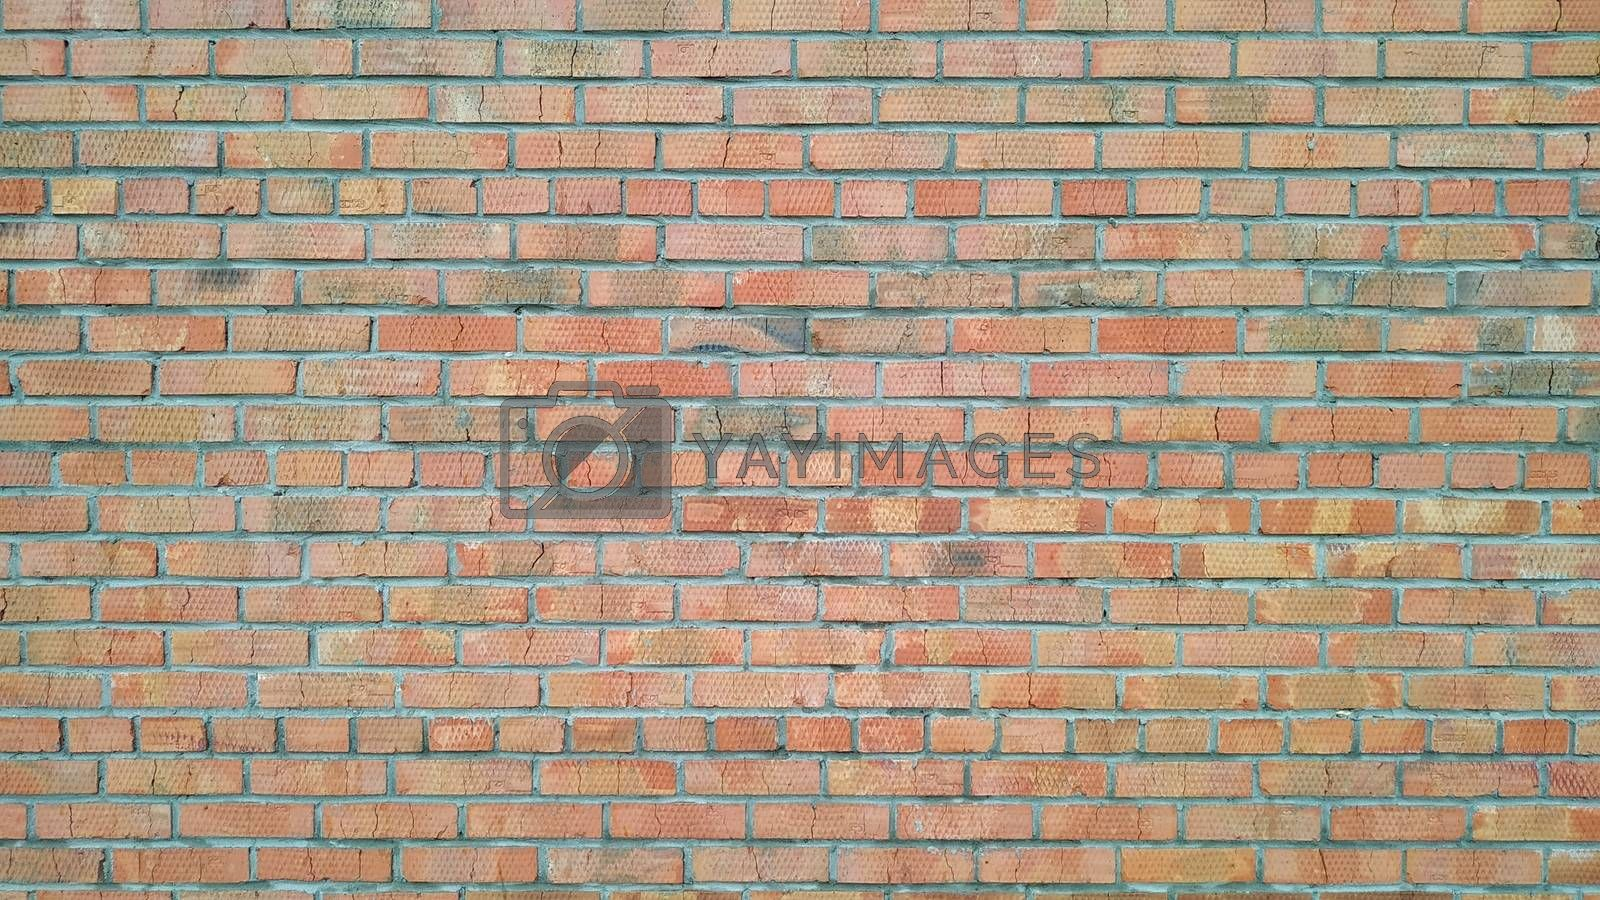 Old bricks wall, taken in the street on a cloudy day close-up. Background. Texture.